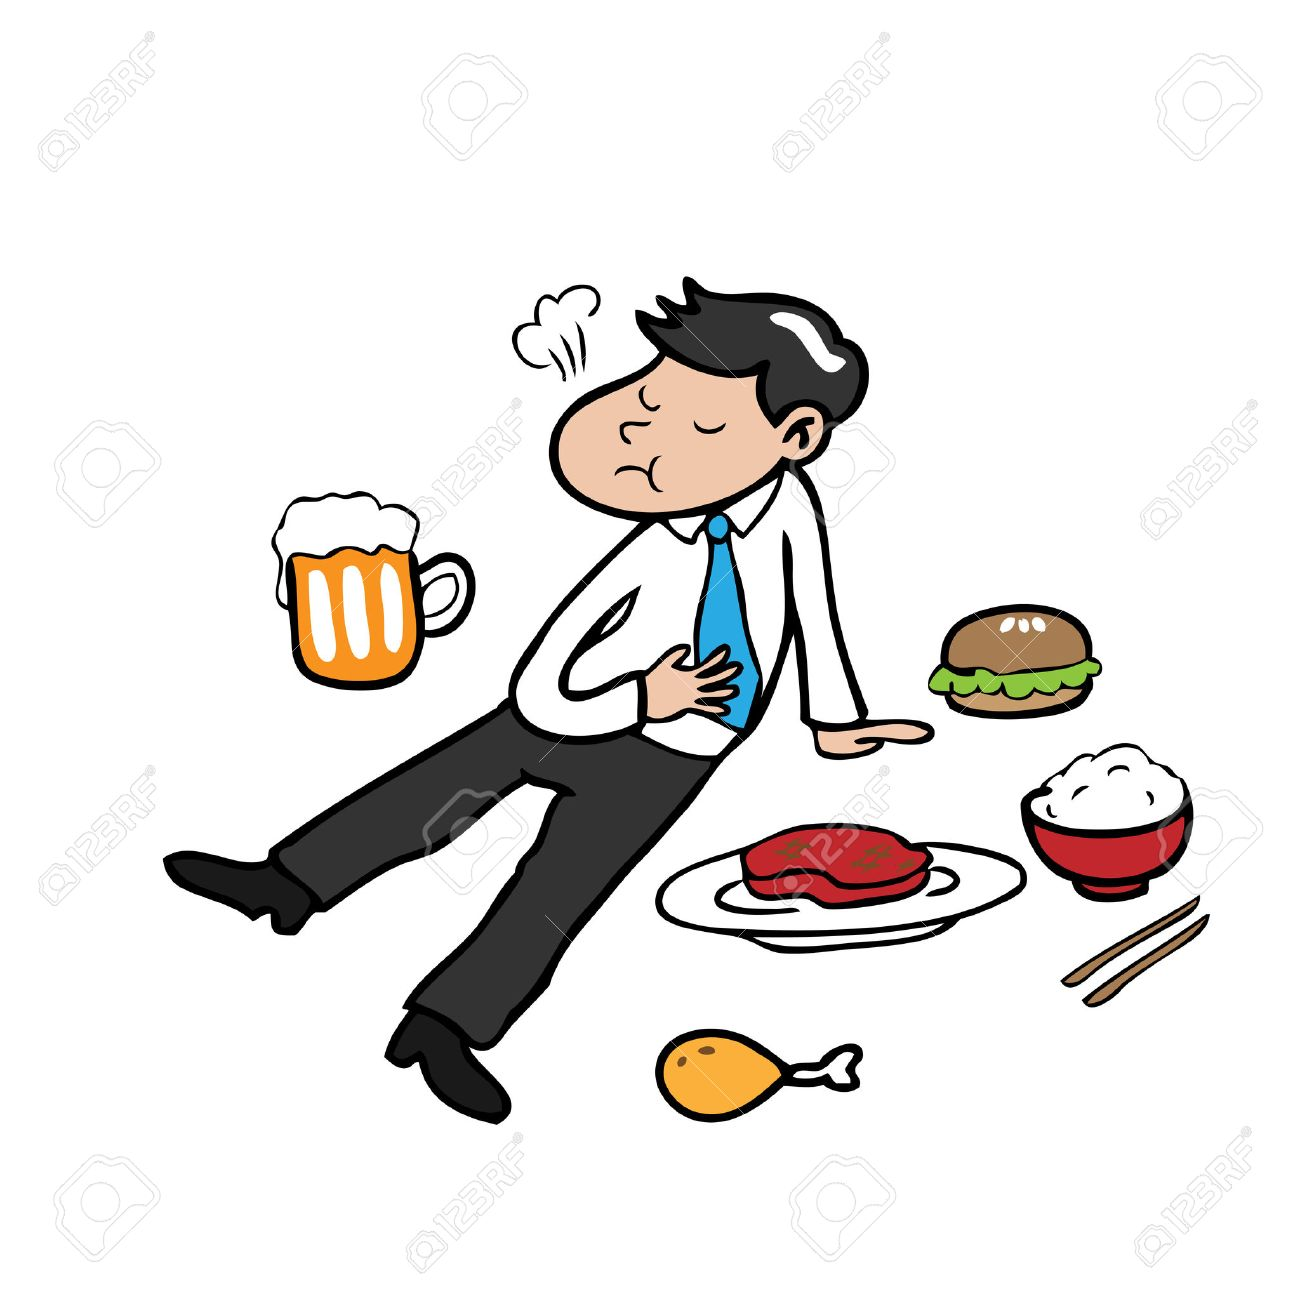 Man Eat Too Much Cartoon Character Vector Royalty Free Cliparts